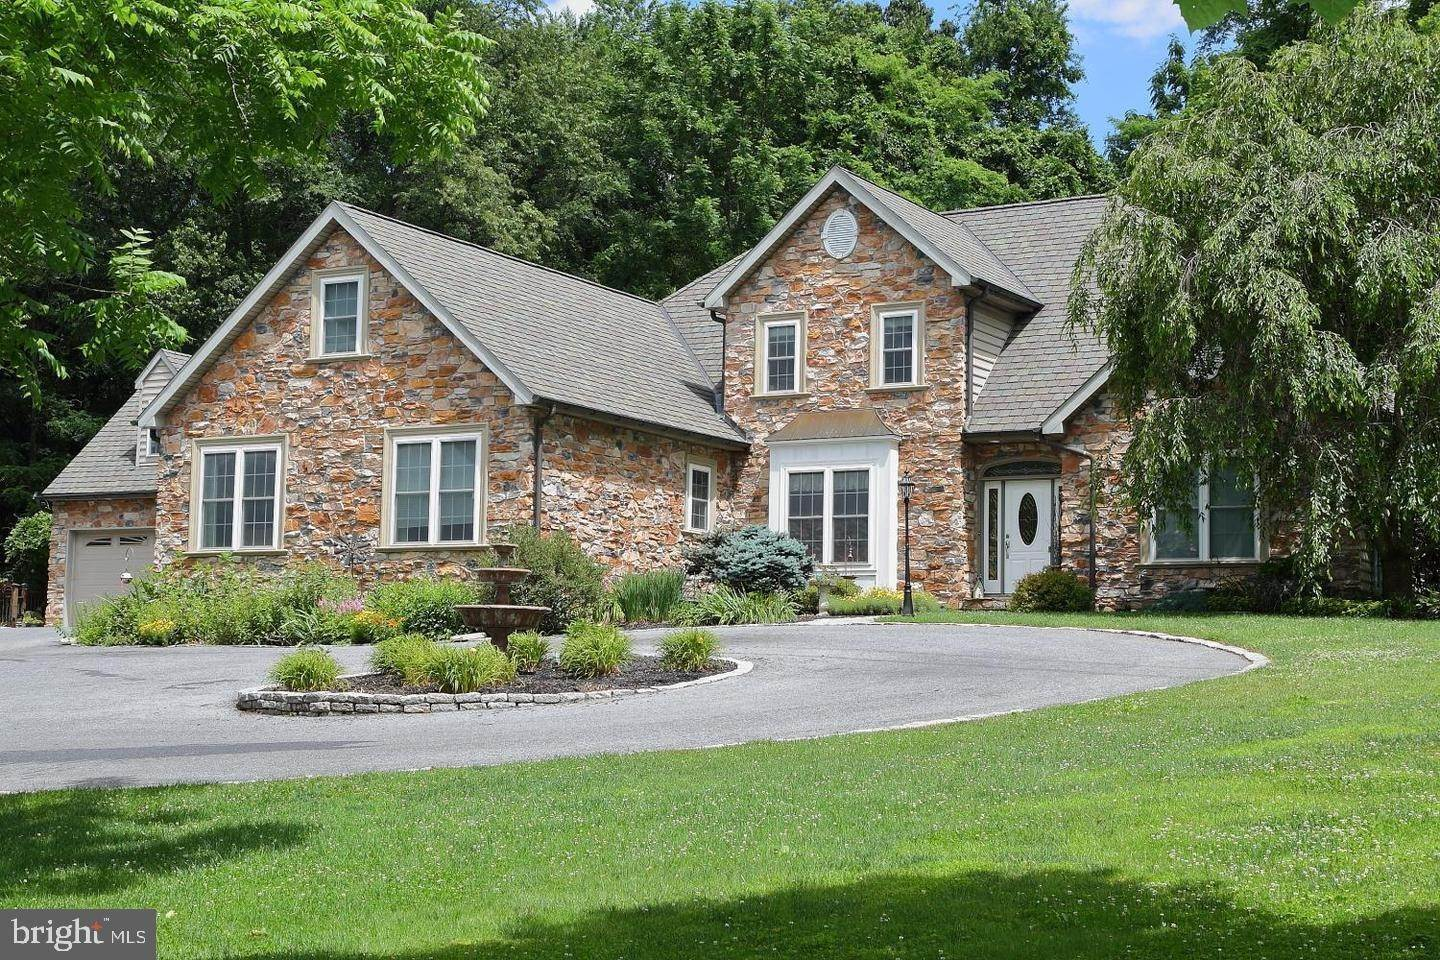 Residential for Sale at 1426 TANNING YARD HOLLOW Road Peach Bottom, Pennsylvania 17563 United States